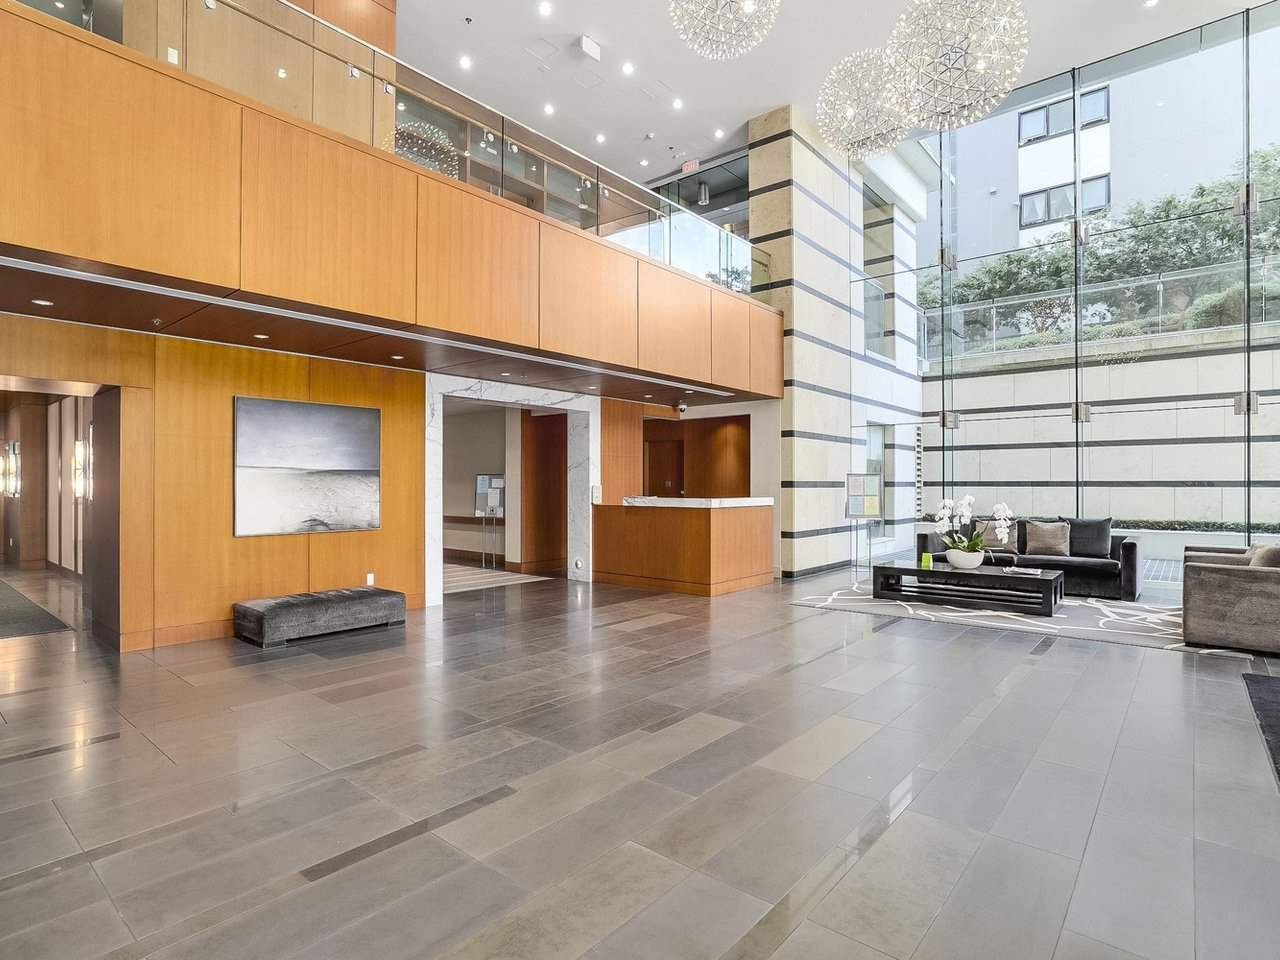 Condo Apartment at 2508 1028 BARCLAY STREET, Unit 2508, Vancouver West, British Columbia. Image 2